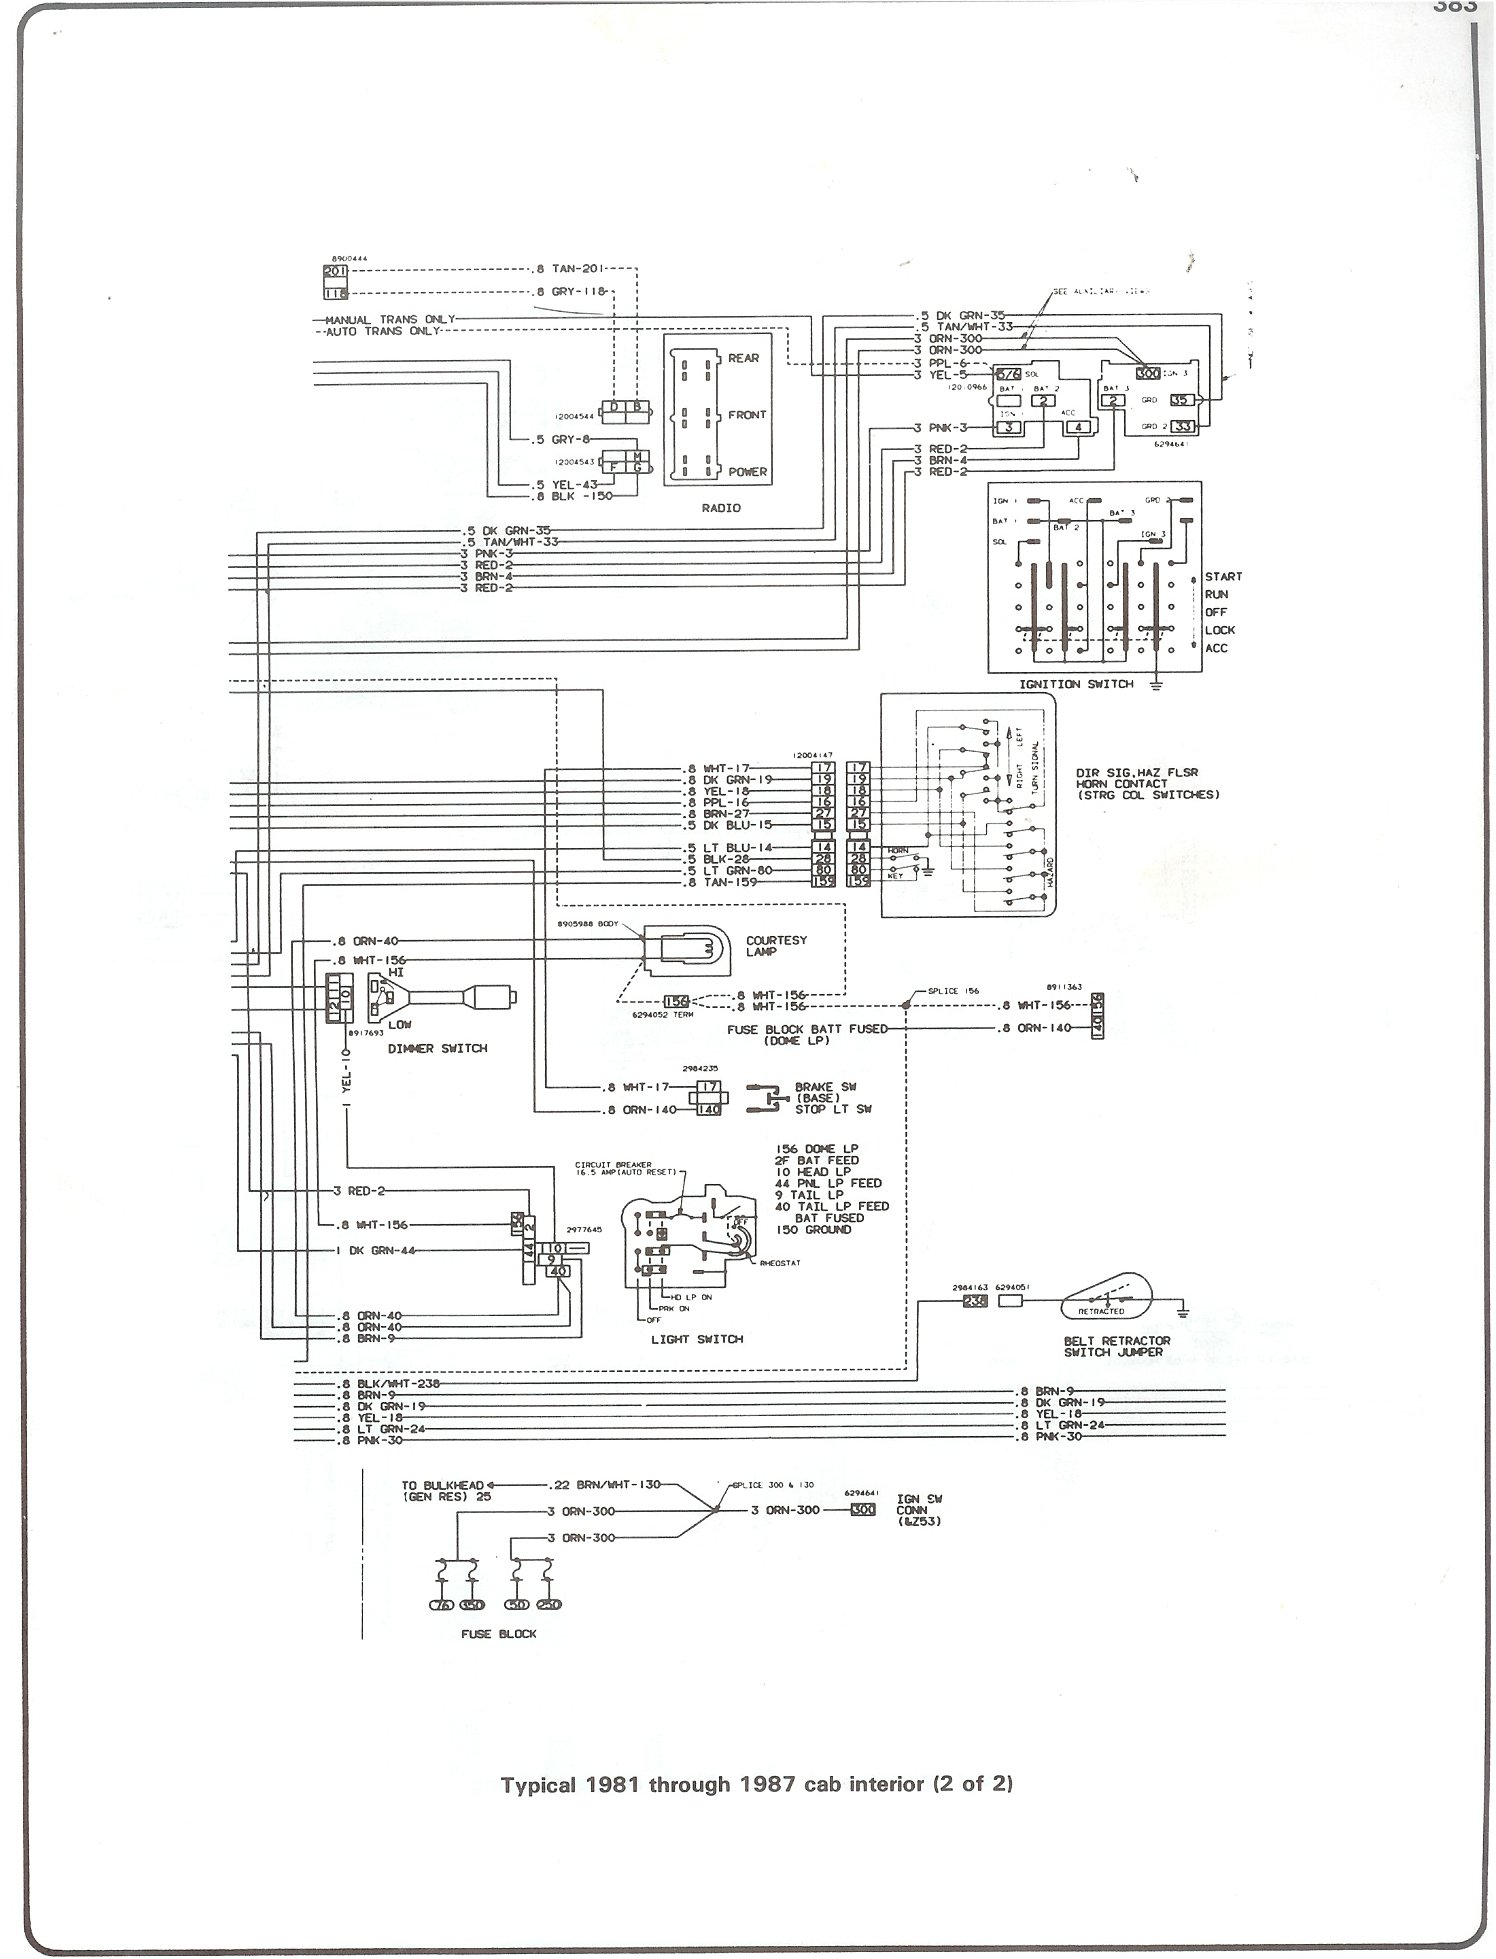 81 87_cab_inter_pg2 complete 73 87 wiring diagrams 1965 chevy c10 starter wiring diagram at edmiracle.co